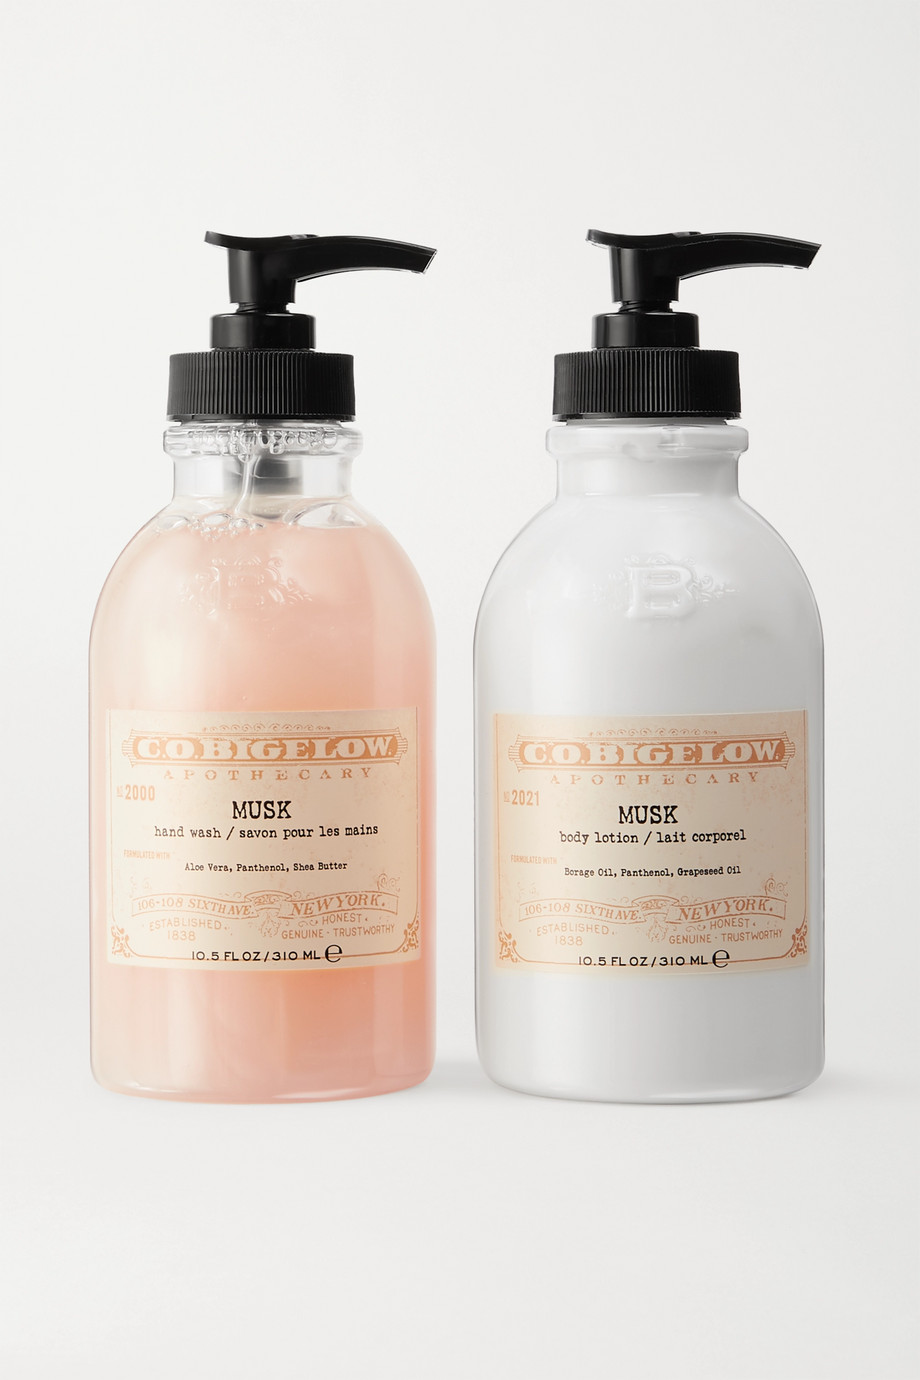 C.O. BIGELOW Iconic Collection Hand Wash and Body Lotion Set - Musk